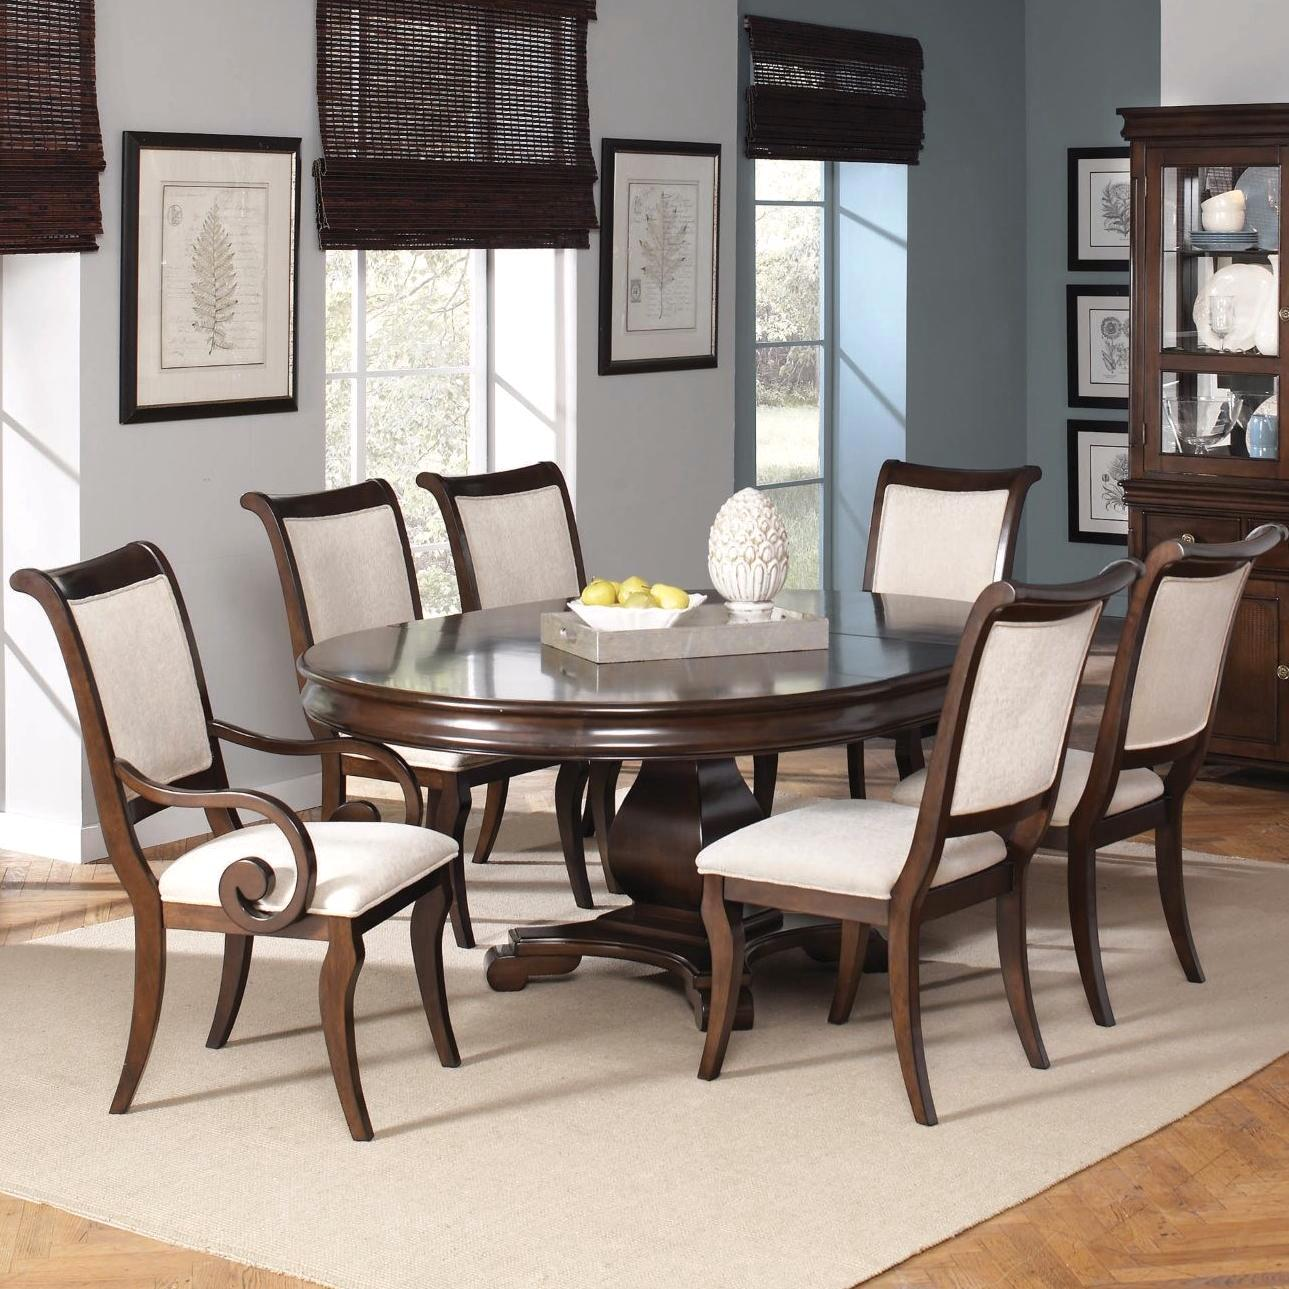 Cherry Dining Room Chairs: Harris Dark Cherry Finish Dining Room Furniture Set